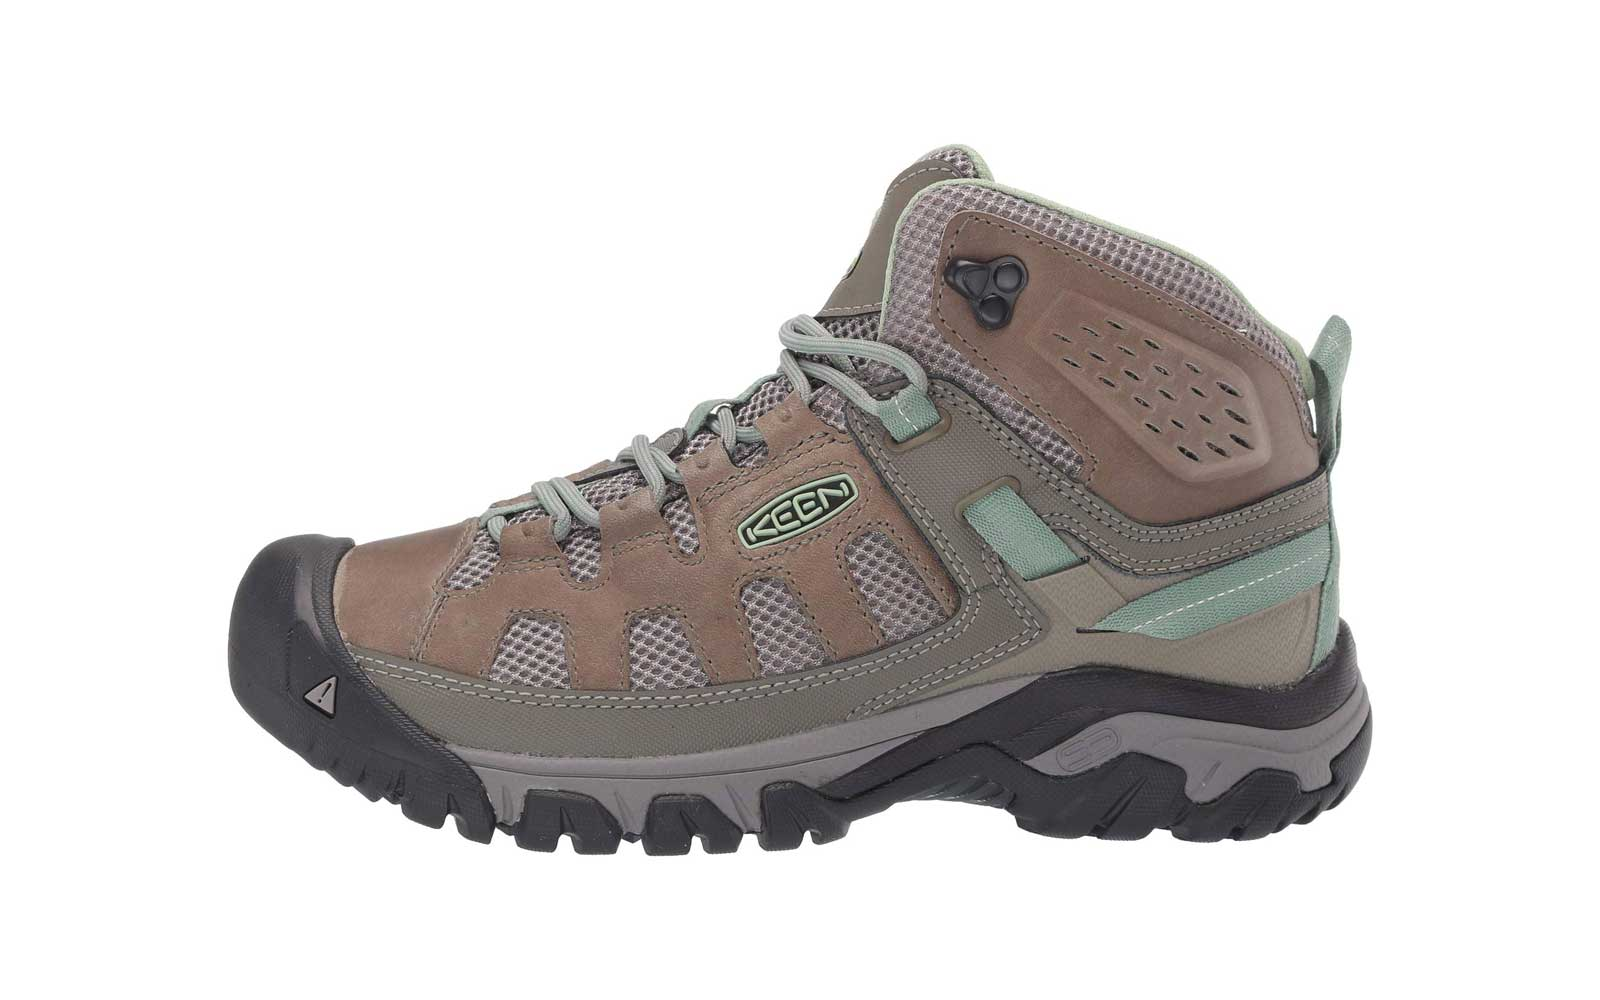 5e655e56d29 The 20 Best Hiking Shoes and Boots for Women in 2019 | Travel + Leisure